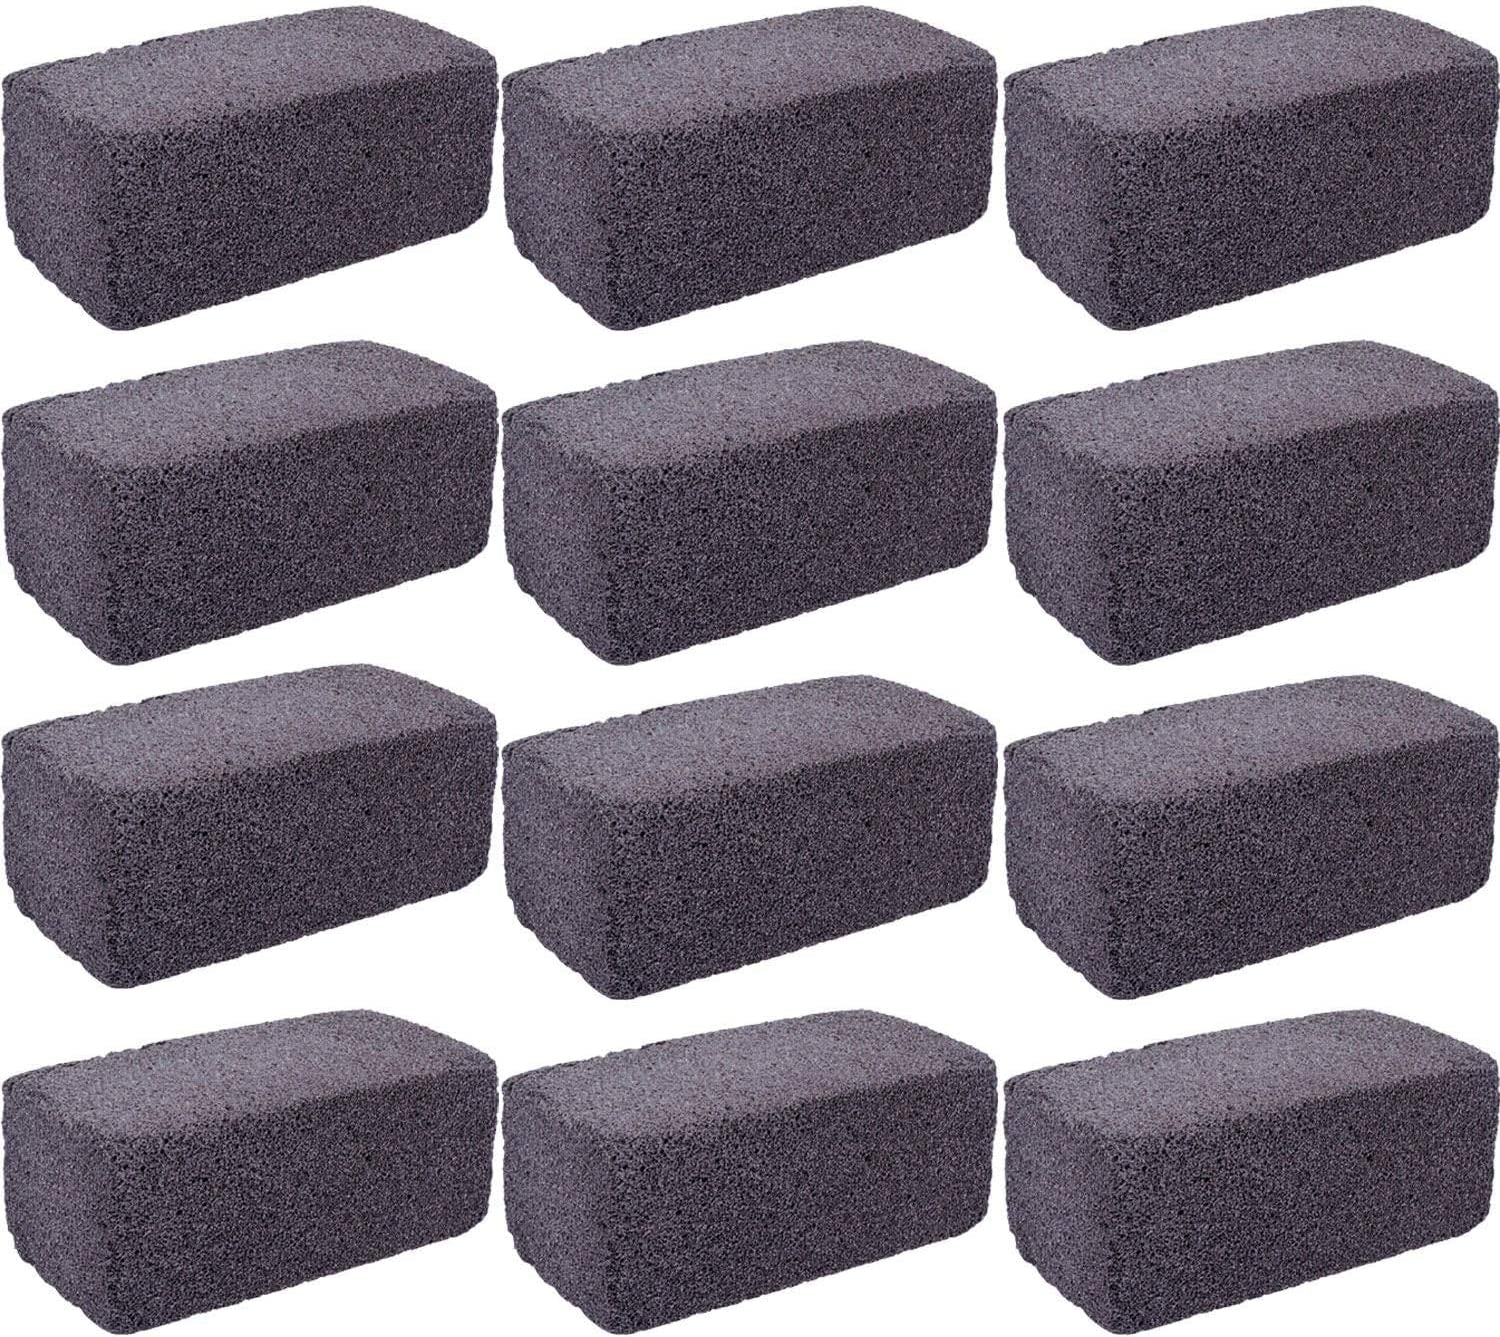 BBQ Barbecue Scraper Griddle Cleaning Stone Griddle//Grill Cleaner GIGA-MARKET Grill Brick